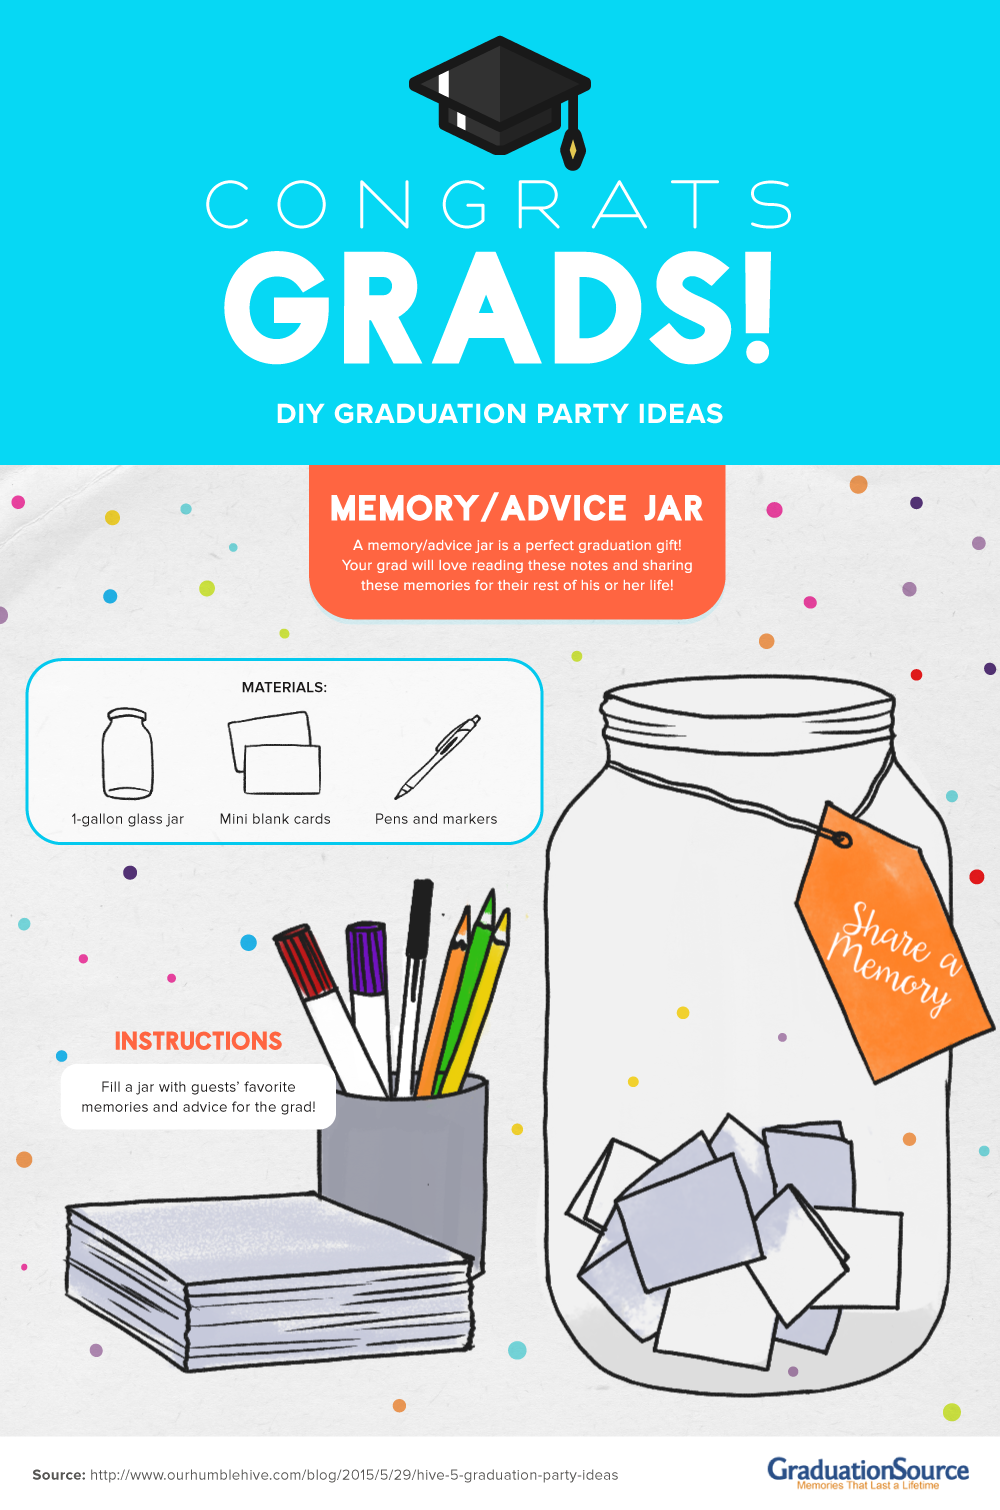 Diy Graduation Party Ideas From Graduationsource